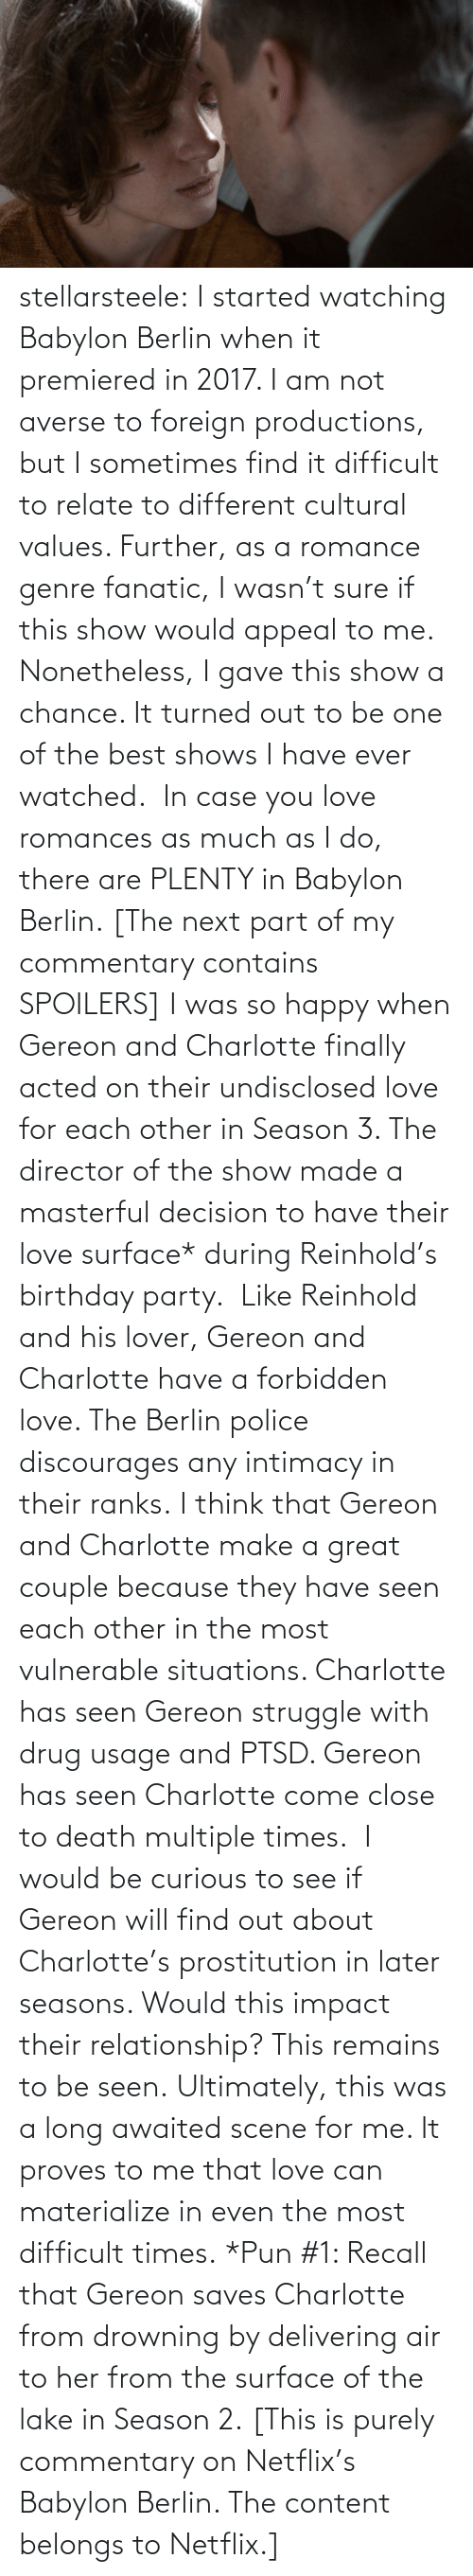 decision: stellarsteele: I started watching Babylon Berlin when it premiered in 2017. I am not averse to foreign productions, but I sometimes find it difficult to relate to different cultural values. Further, as a romance genre fanatic, I wasn't sure if this show would appeal to me. Nonetheless, I gave this show a chance. It turned out to be one of the best shows I have ever watched. In case you love romances as much as I do, there are PLENTY in Babylon Berlin. [The next part of my commentary contains SPOILERS] I was so happy when Gereon and Charlotte finally acted on their undisclosed love for each other in Season 3. The director of the show made a masterful decision to have their love surface* during Reinhold's birthday party. Like Reinhold and his lover, Gereon and Charlotte have a forbidden love. The Berlin police discourages any intimacy in their ranks. I think that Gereon and Charlotte make a great couple because they have seen each other in the most vulnerable situations. Charlotte has seen Gereon struggle with drug usage and PTSD. Gereon has seen Charlotte come close to death multiple times. I would be curious to see if Gereon will find out about Charlotte's prostitution in later seasons. Would this impact their relationship? This remains to be seen. Ultimately, this was a long awaited scene for me. It proves to me that love can materialize in even the most difficult times. *Pun #1: Recall that Gereon saves Charlotte from drowning by delivering air to her from the surface of the lake in Season 2. [This is purely commentary on Netflix's Babylon Berlin. The content belongs to Netflix.]